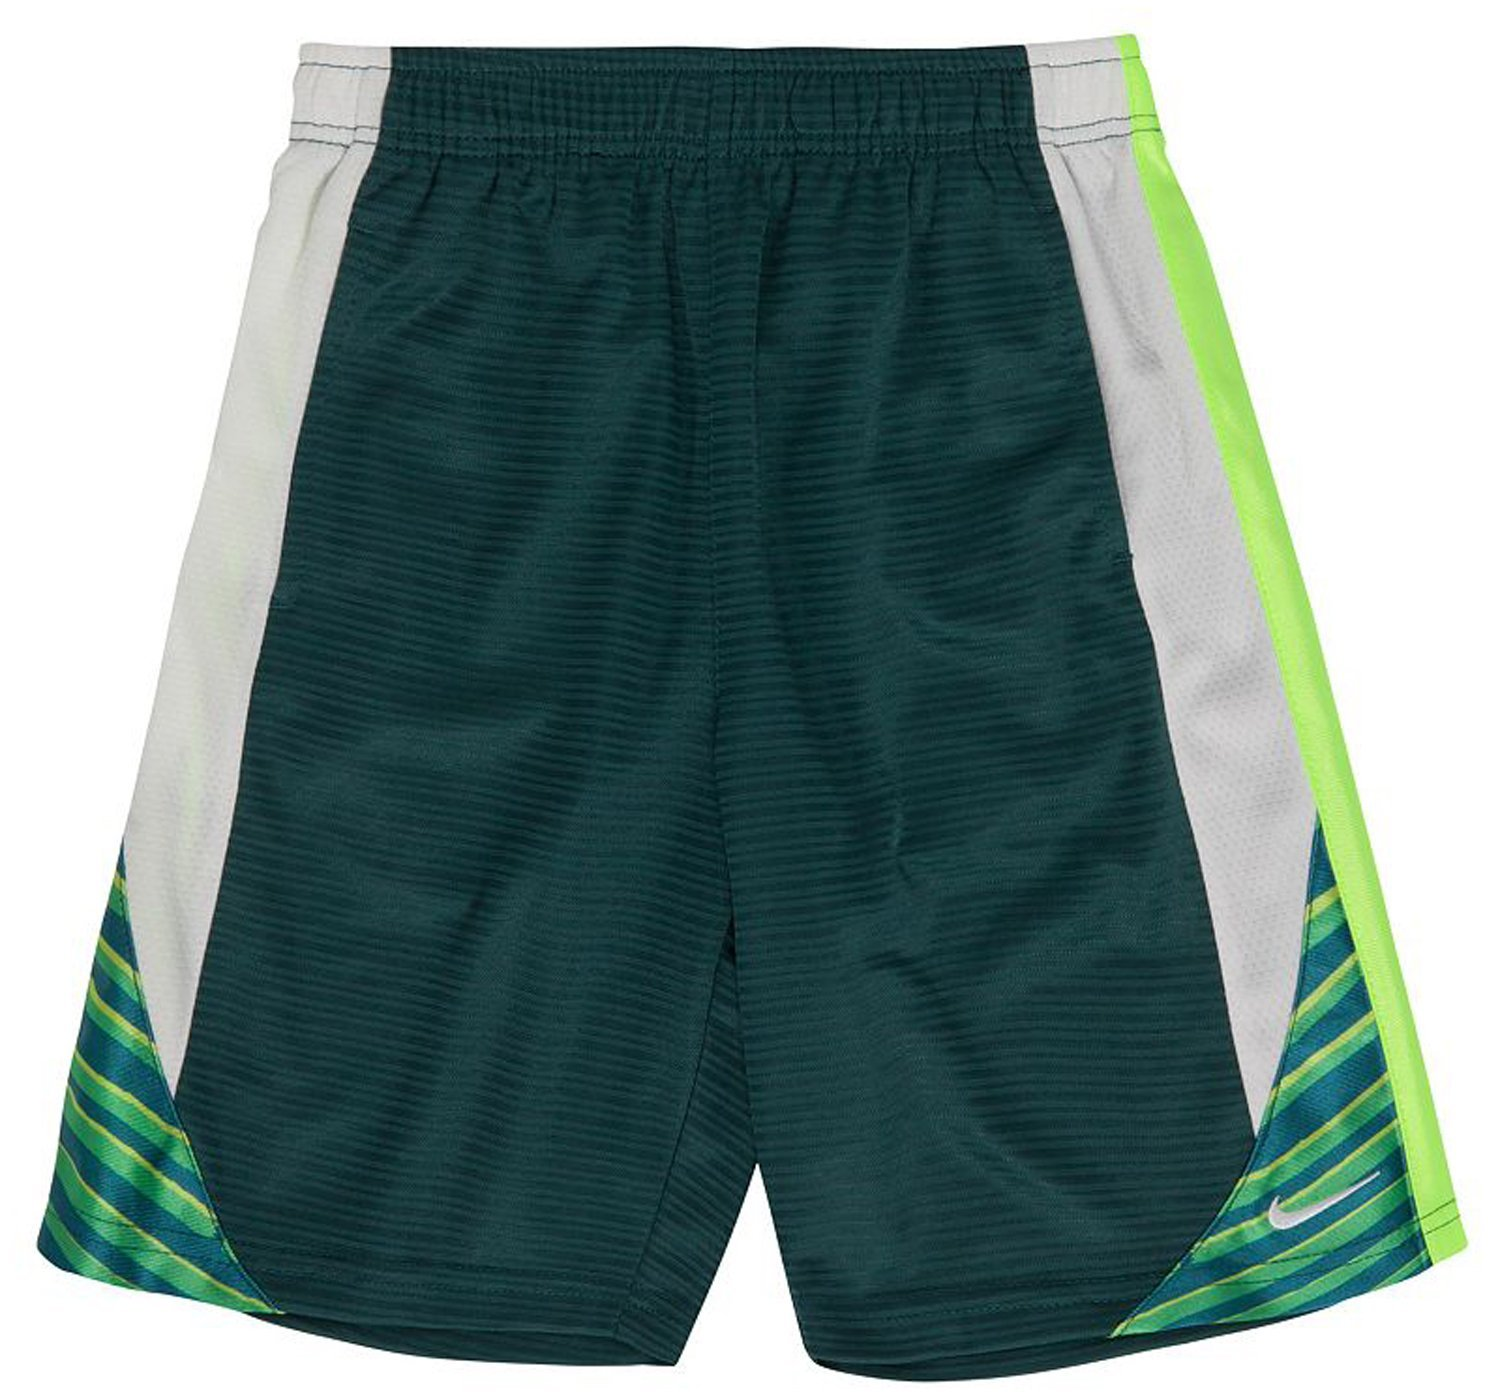 709eea384b27 Get Quotations · Nike Little Boys  Green White Athletic Shorts